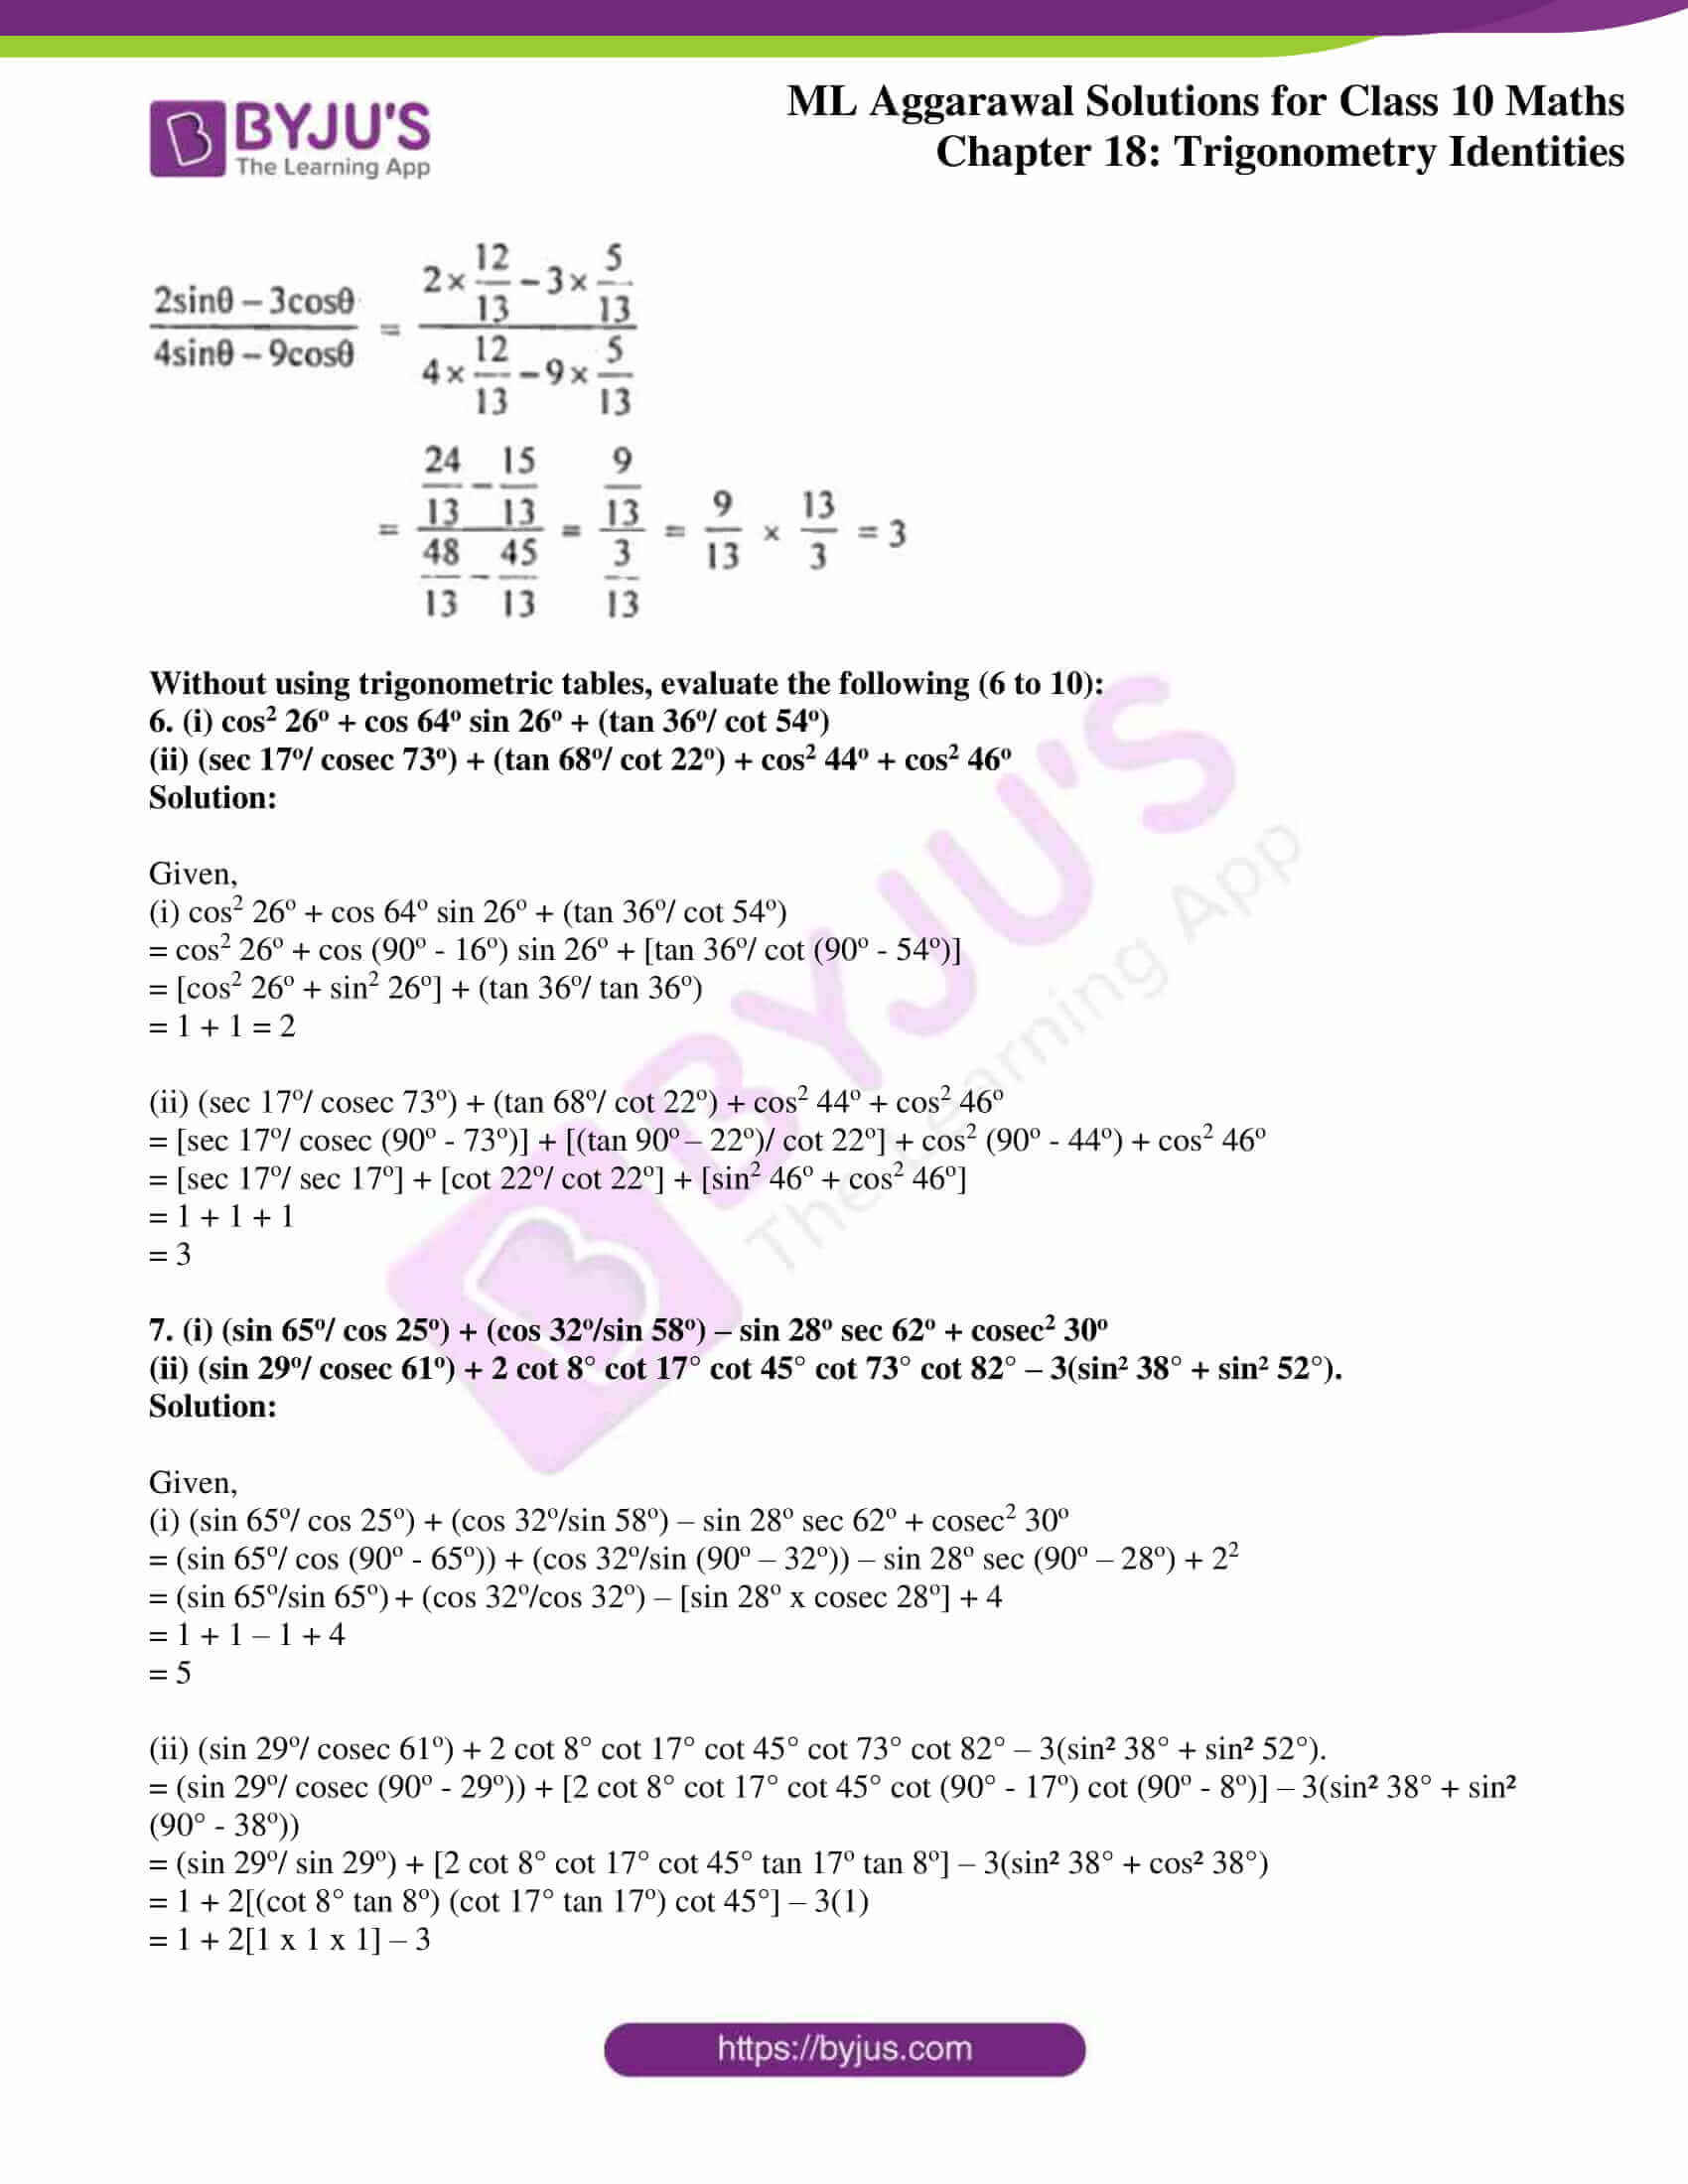 ml aggarwal solutions for class 10 maths chapter 18 03